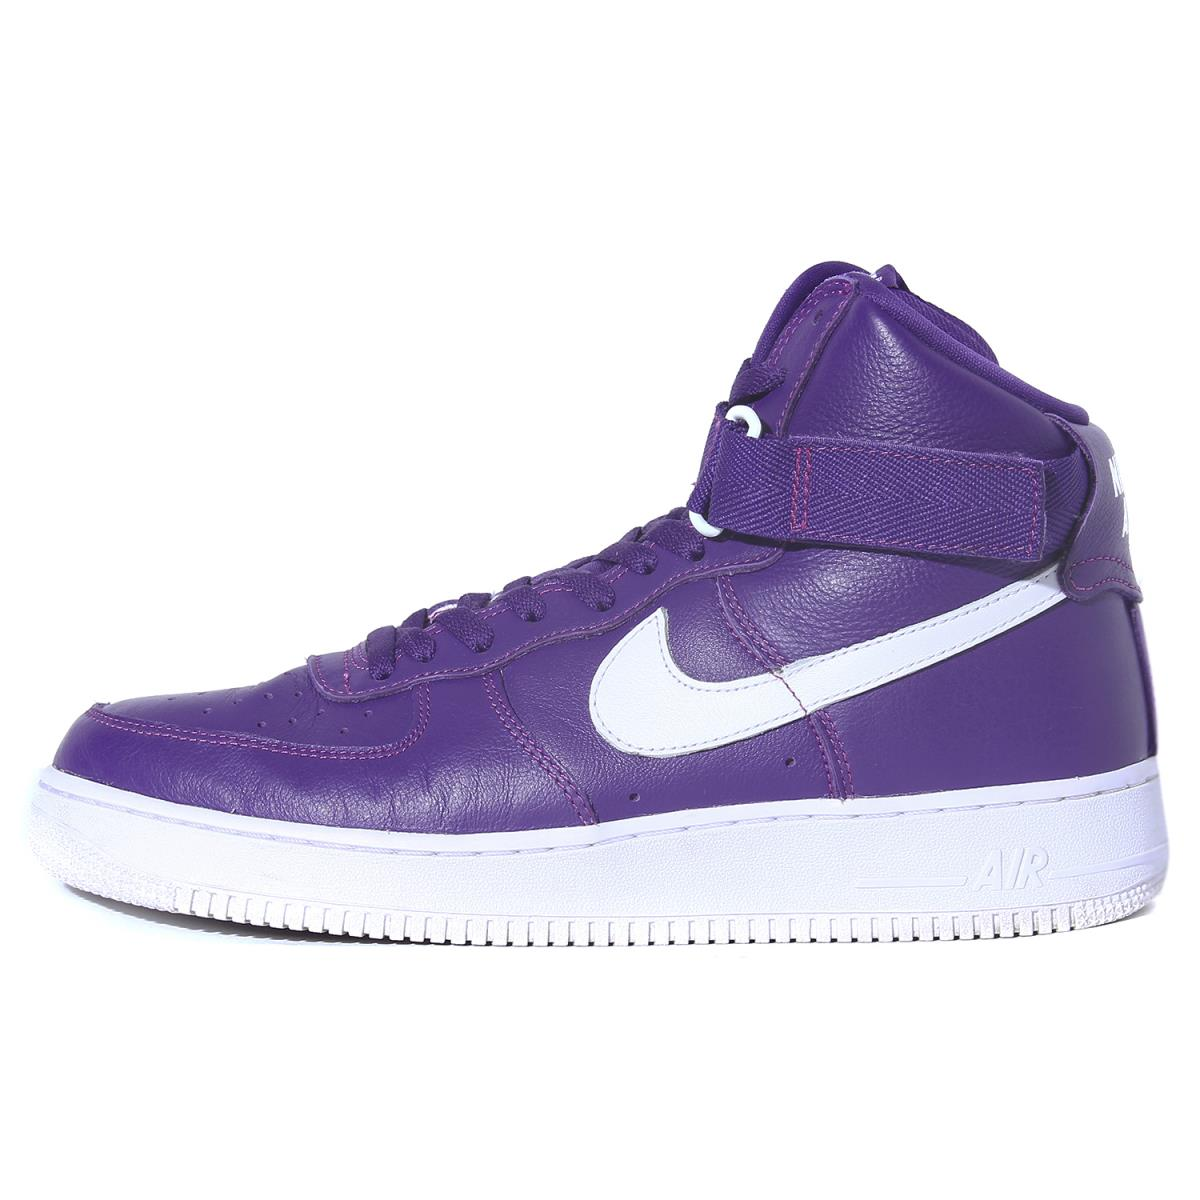 size 40 4ece0 081a9 NIKE (Nike) NIKELAB AIR FORCE 1 HIGH RETRO QS COLOR OF THE MONTH PACK purple  US10.5(28.5cm)